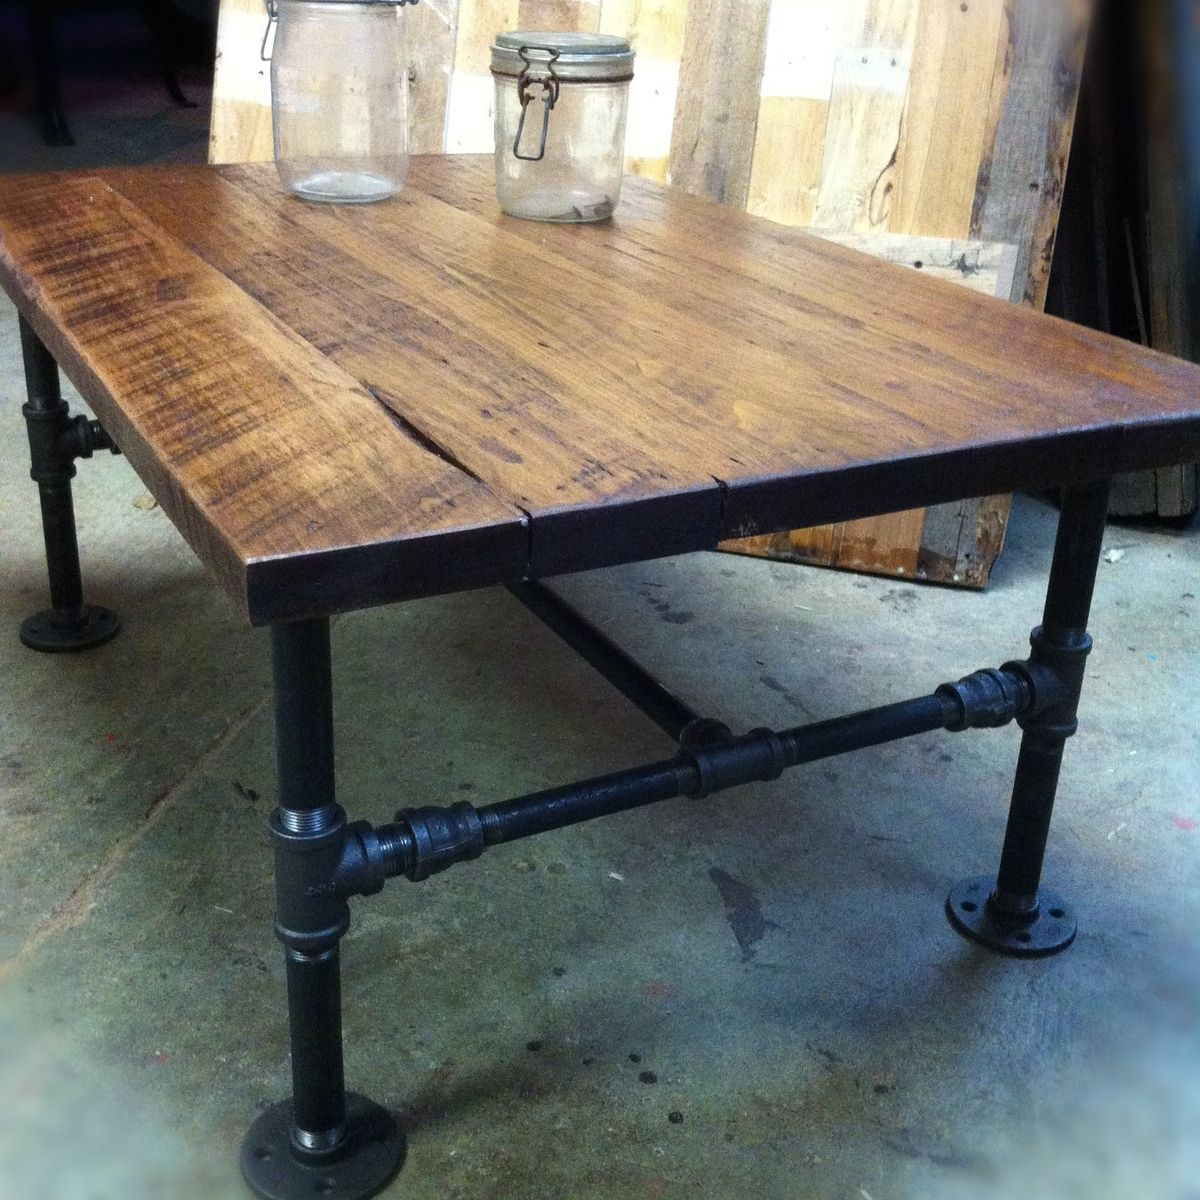 Custom made industrial cast iron pipe coffee table by j s reclaimed wood custom furniture - Industrial kitchen tables ...